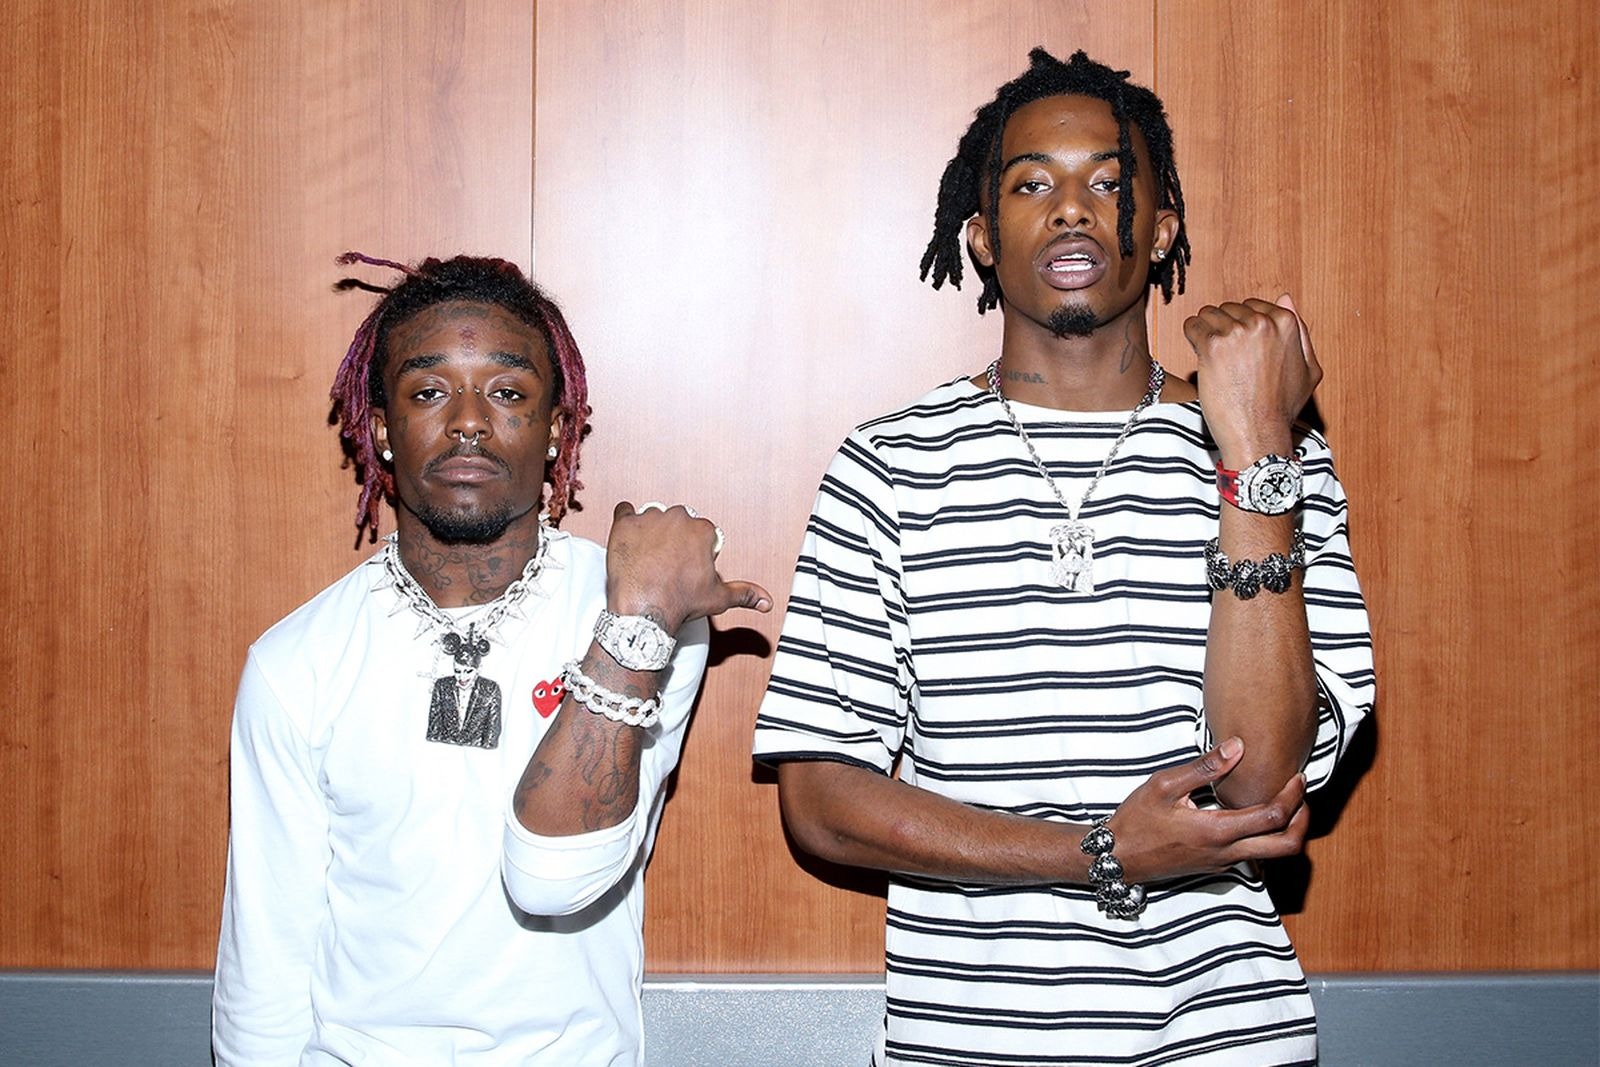 Lil Uzi Vert and Playboi Carti